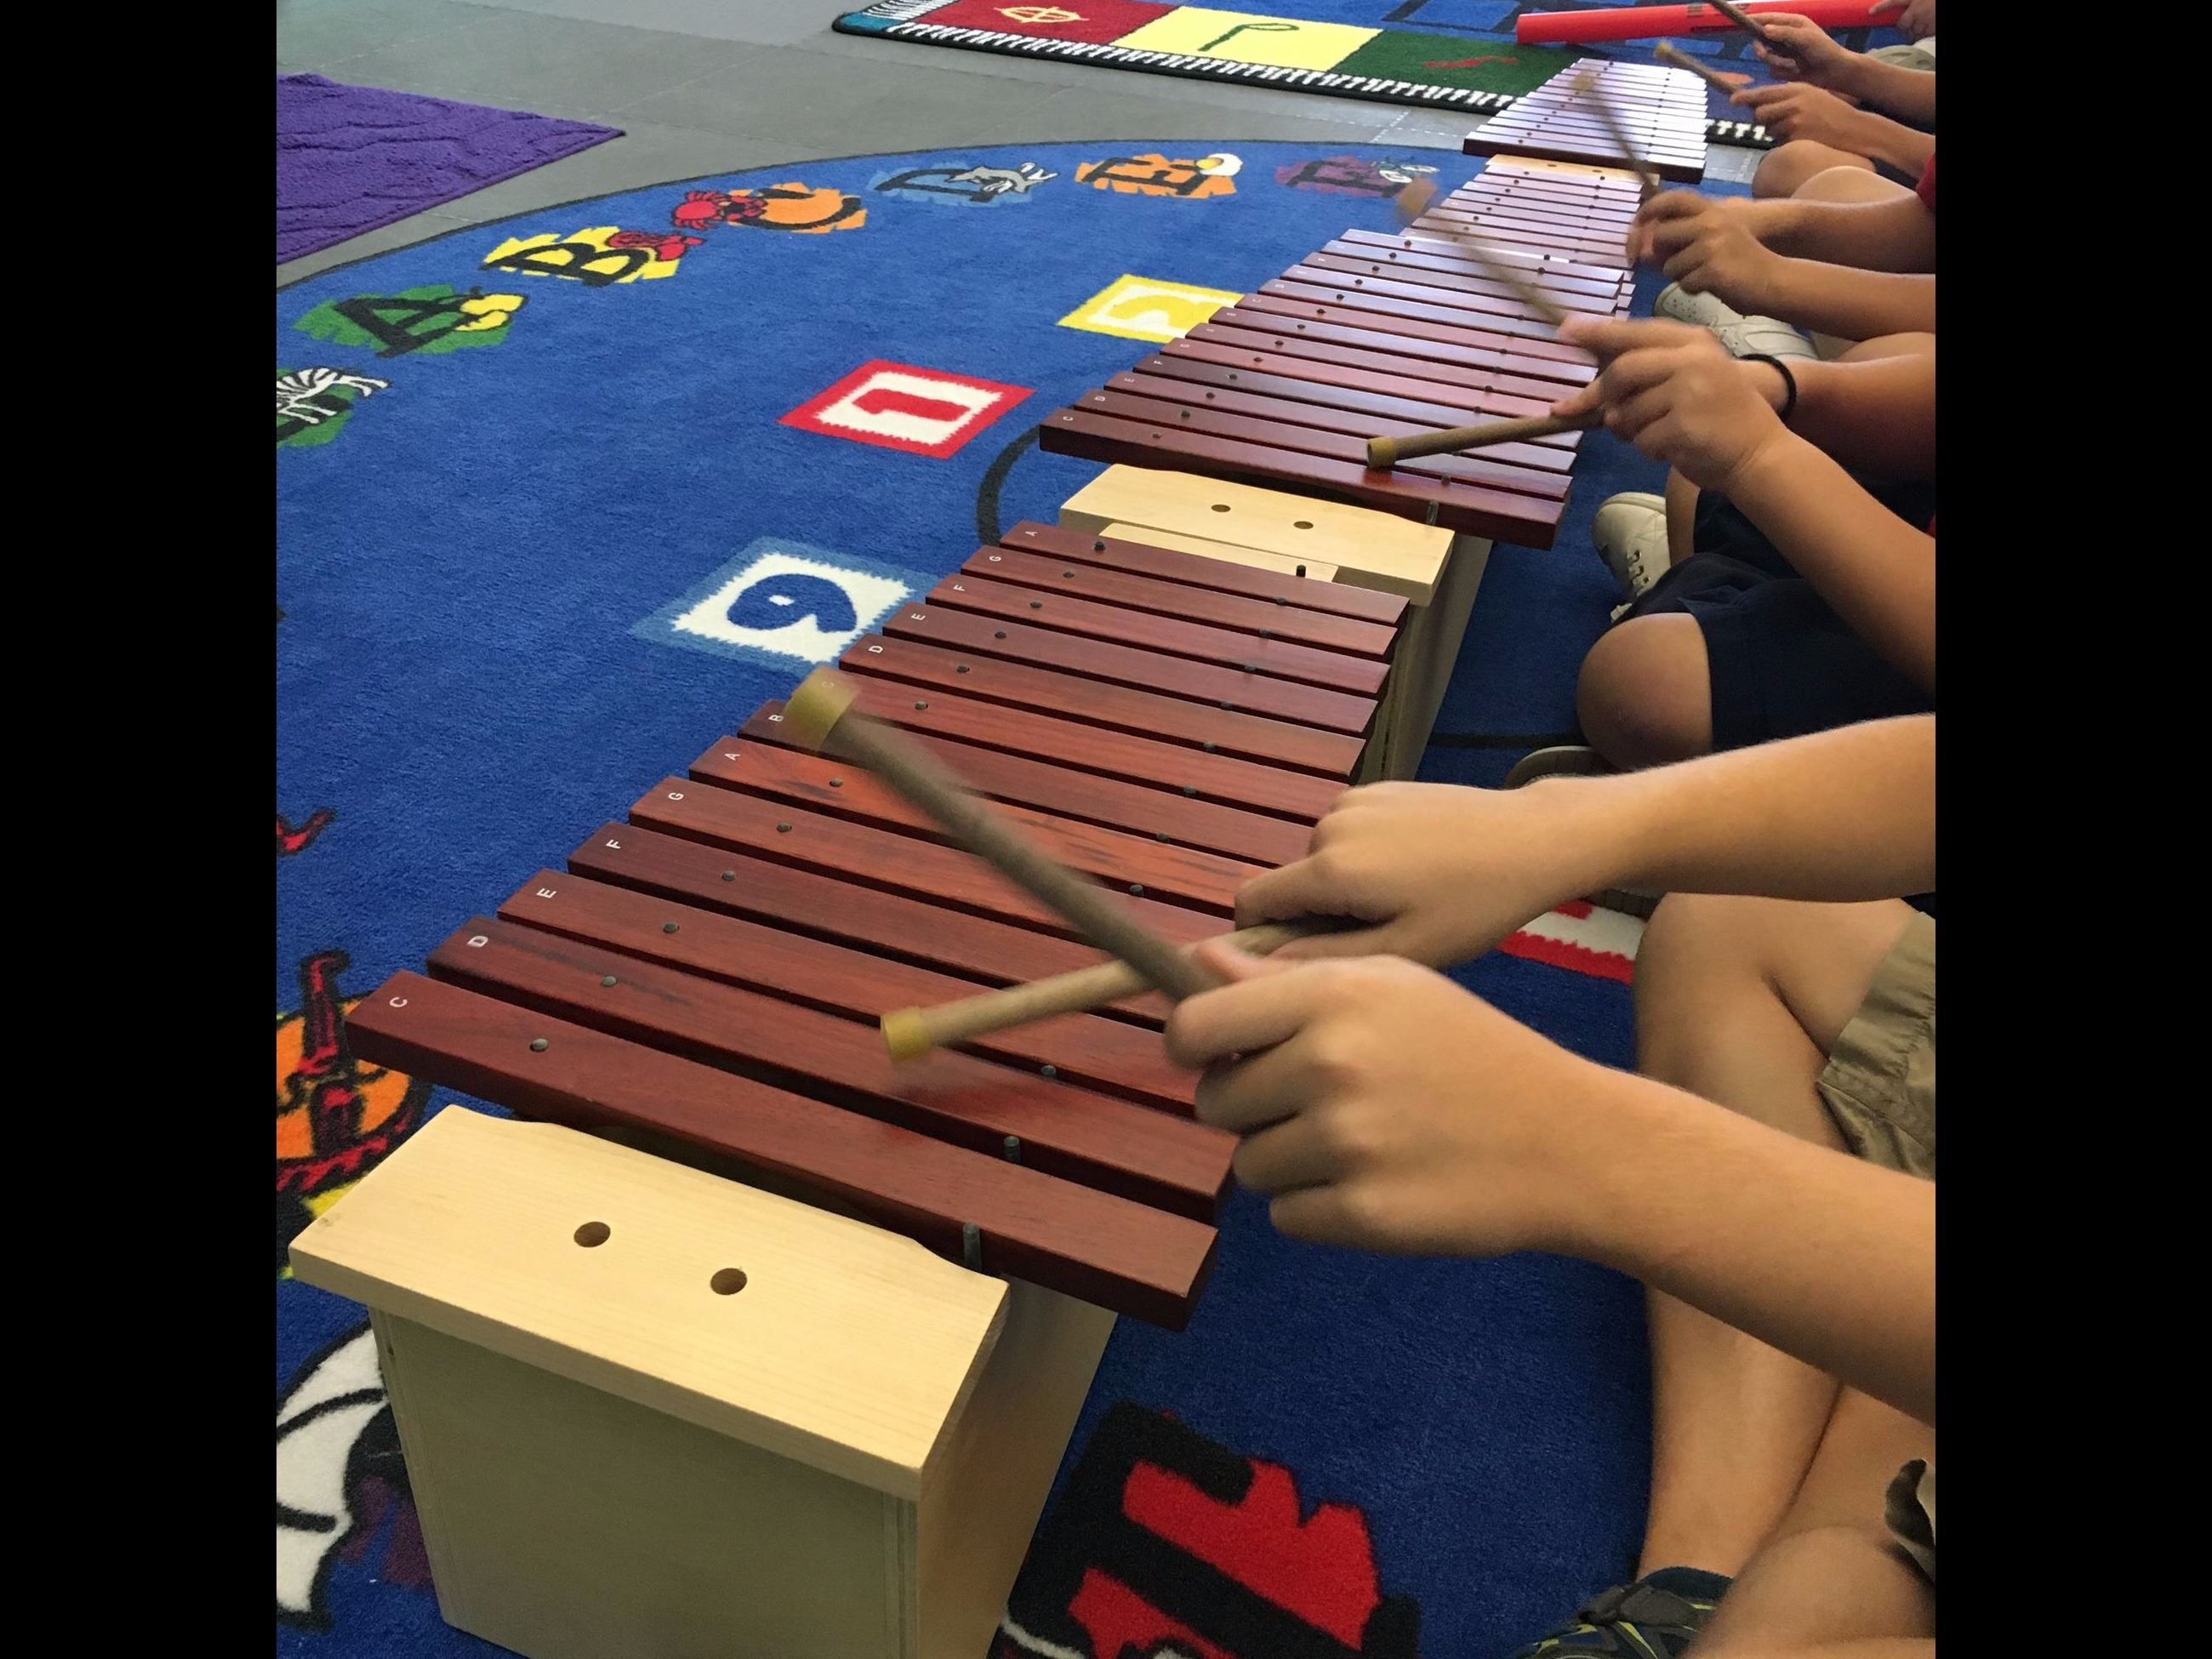 Students making music with xylophones.